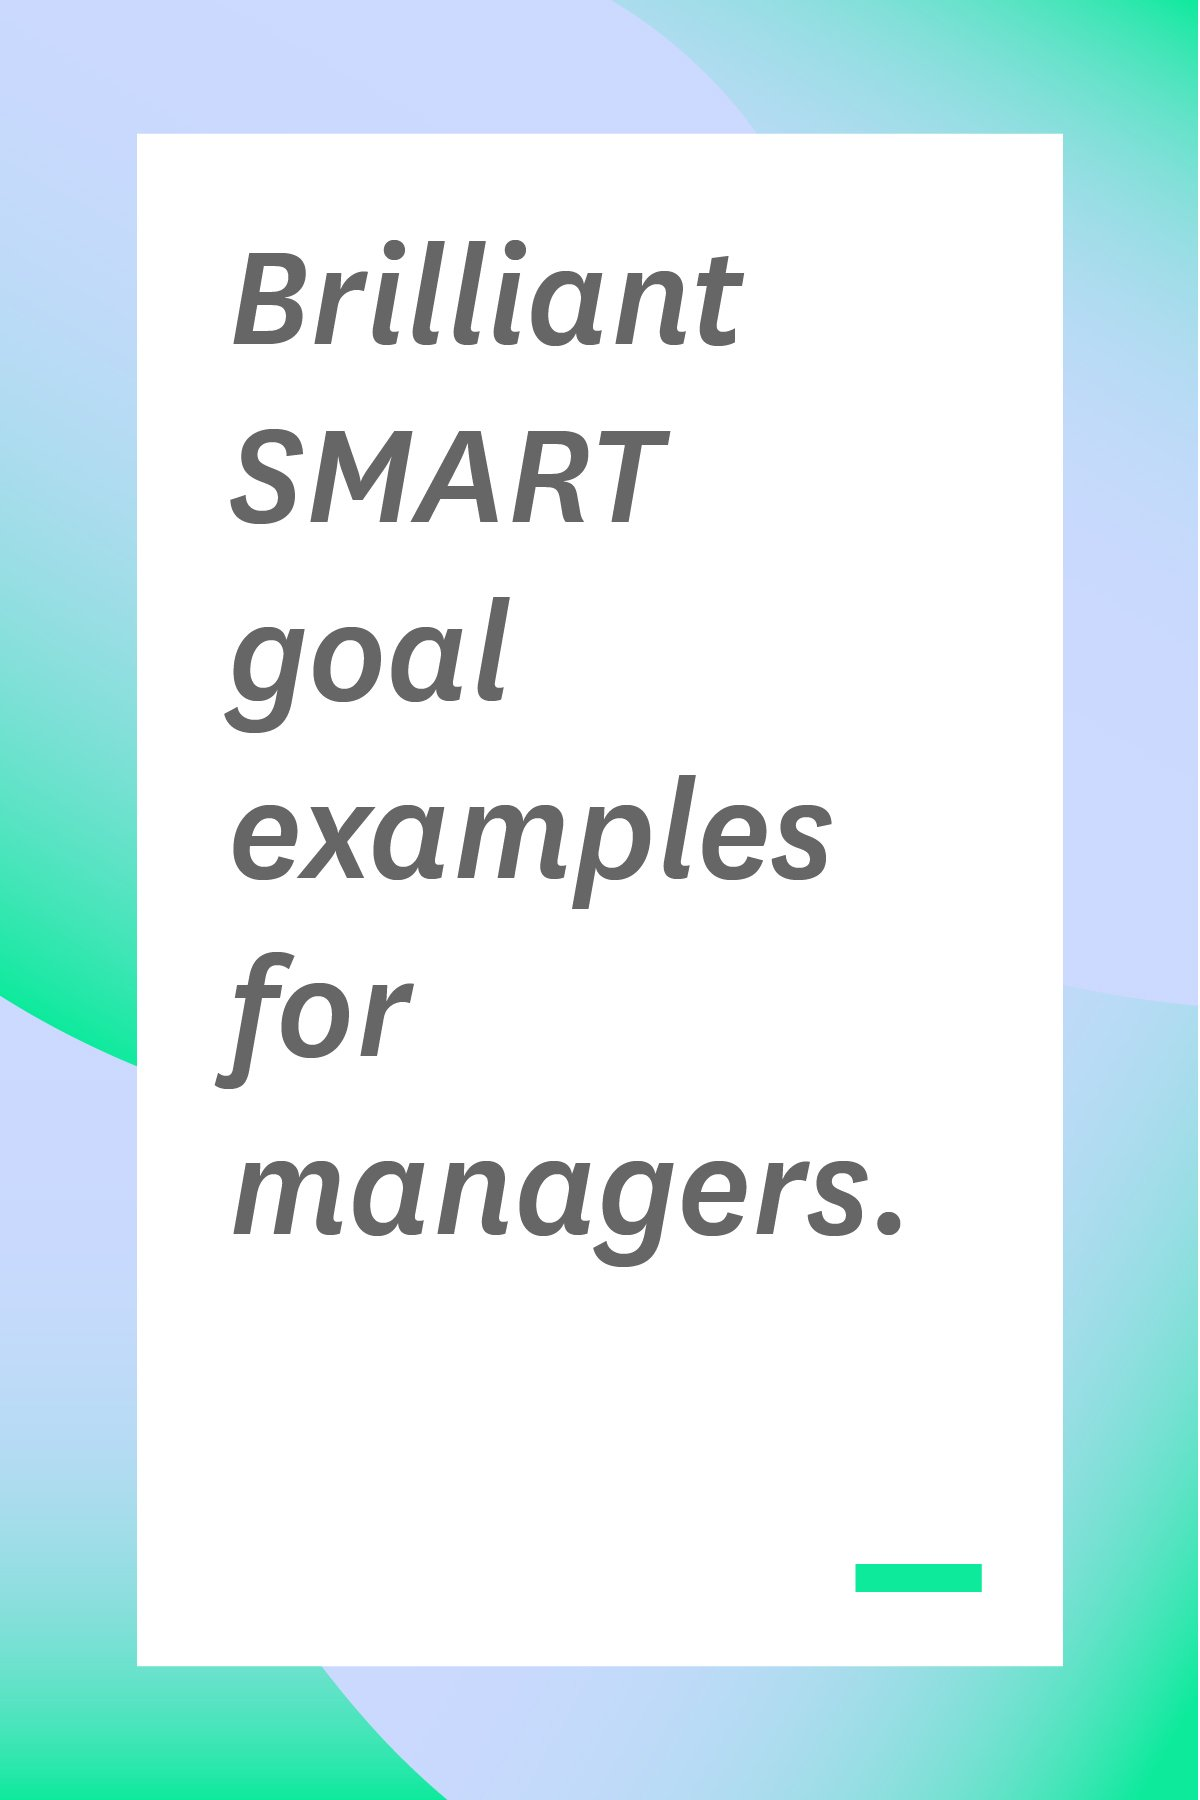 Does your team need SMART goals? These SMART goal examples will help you write your own goals more effectively, so your team can be more effective too. #smartgoals #goalsetting